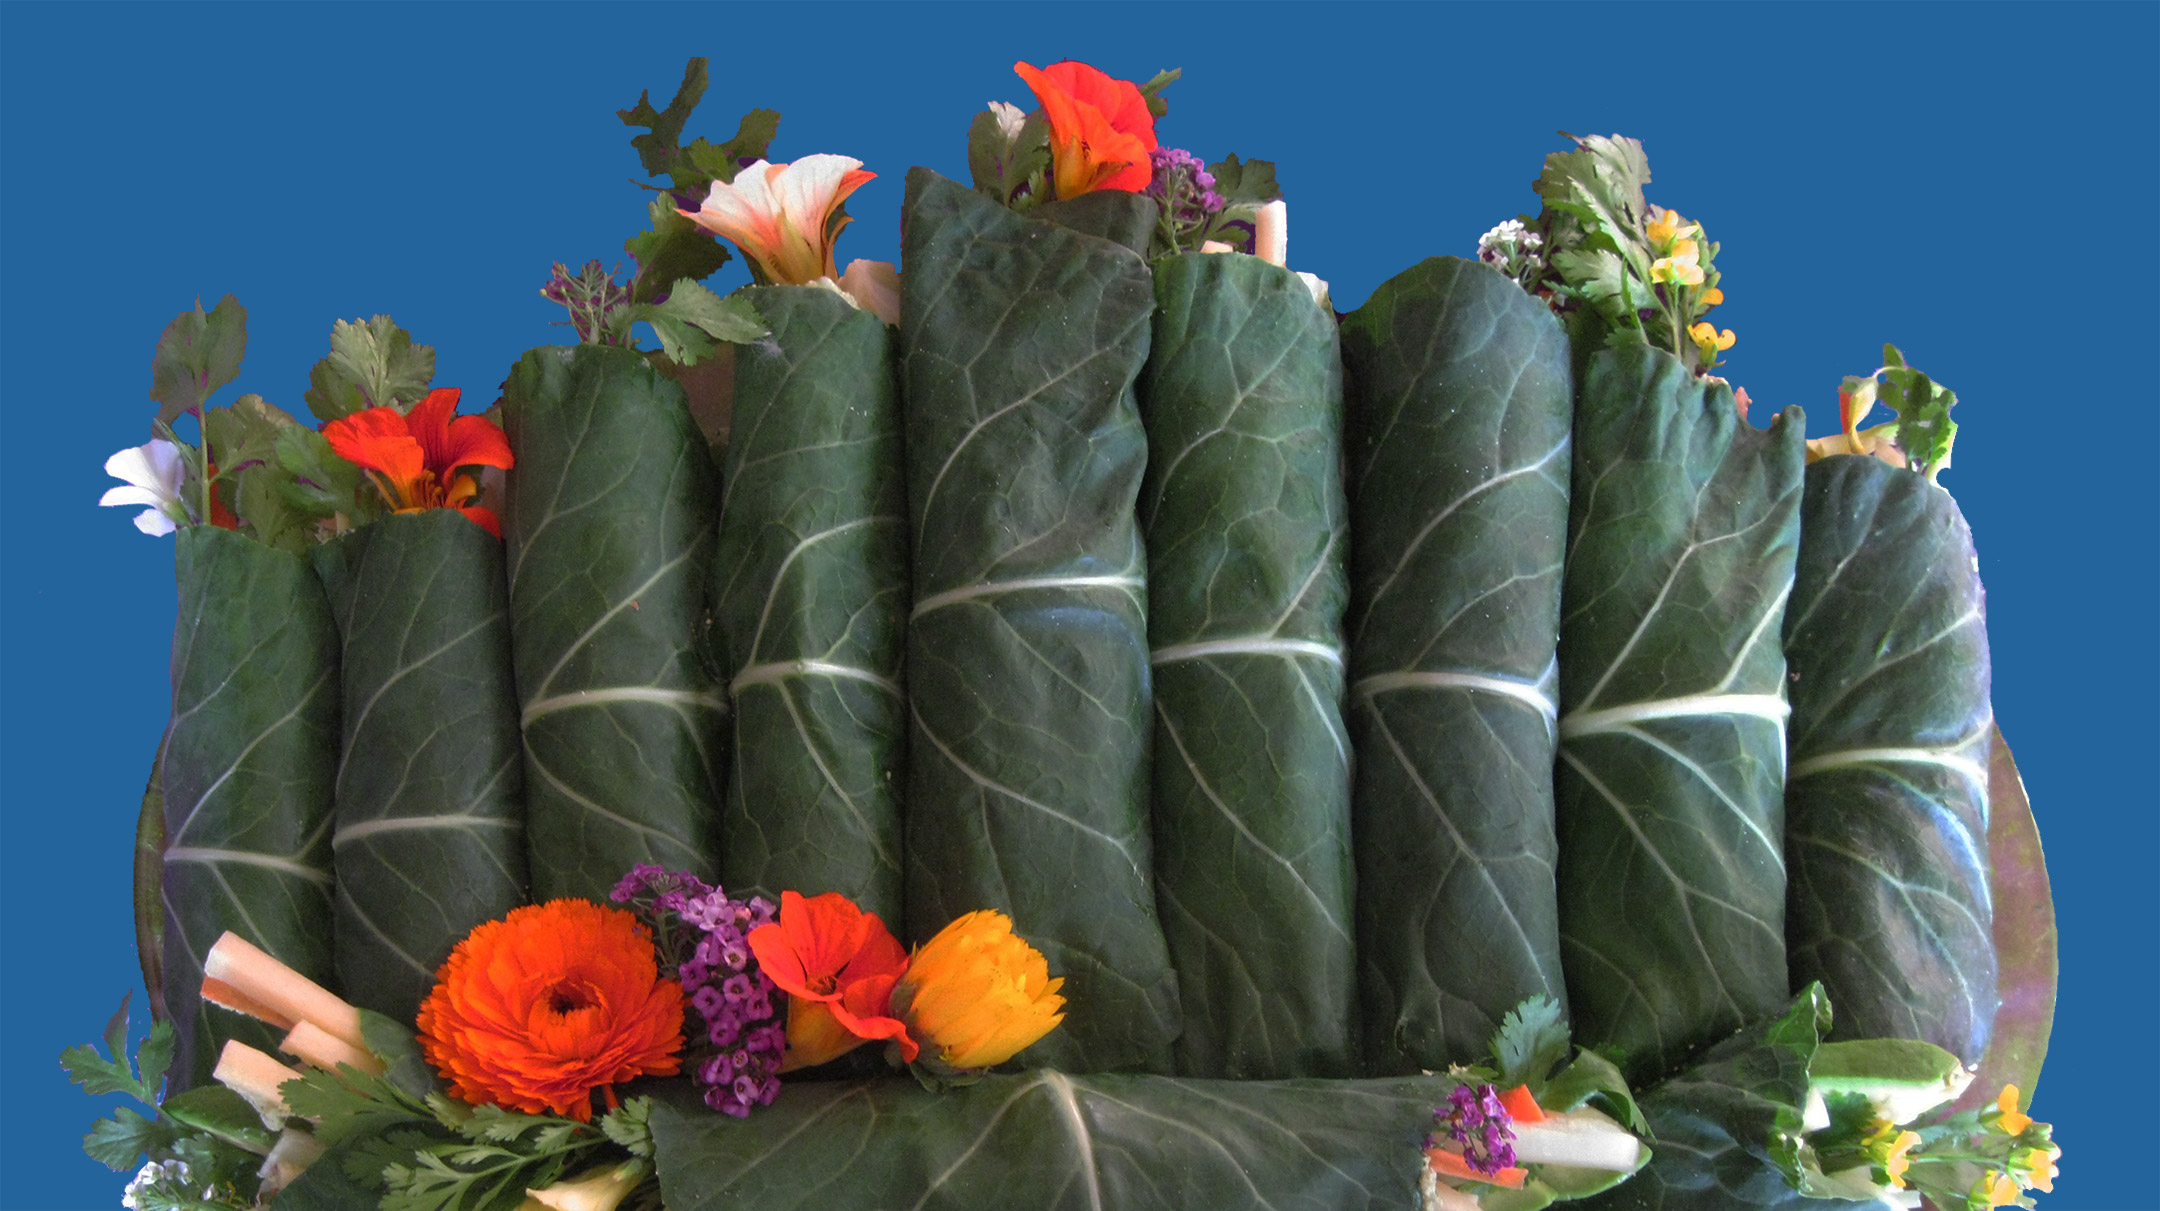 Gorgeous Raw Vegan Gluten-Free Tangy Dill Collard Wraps with Edible Flowers